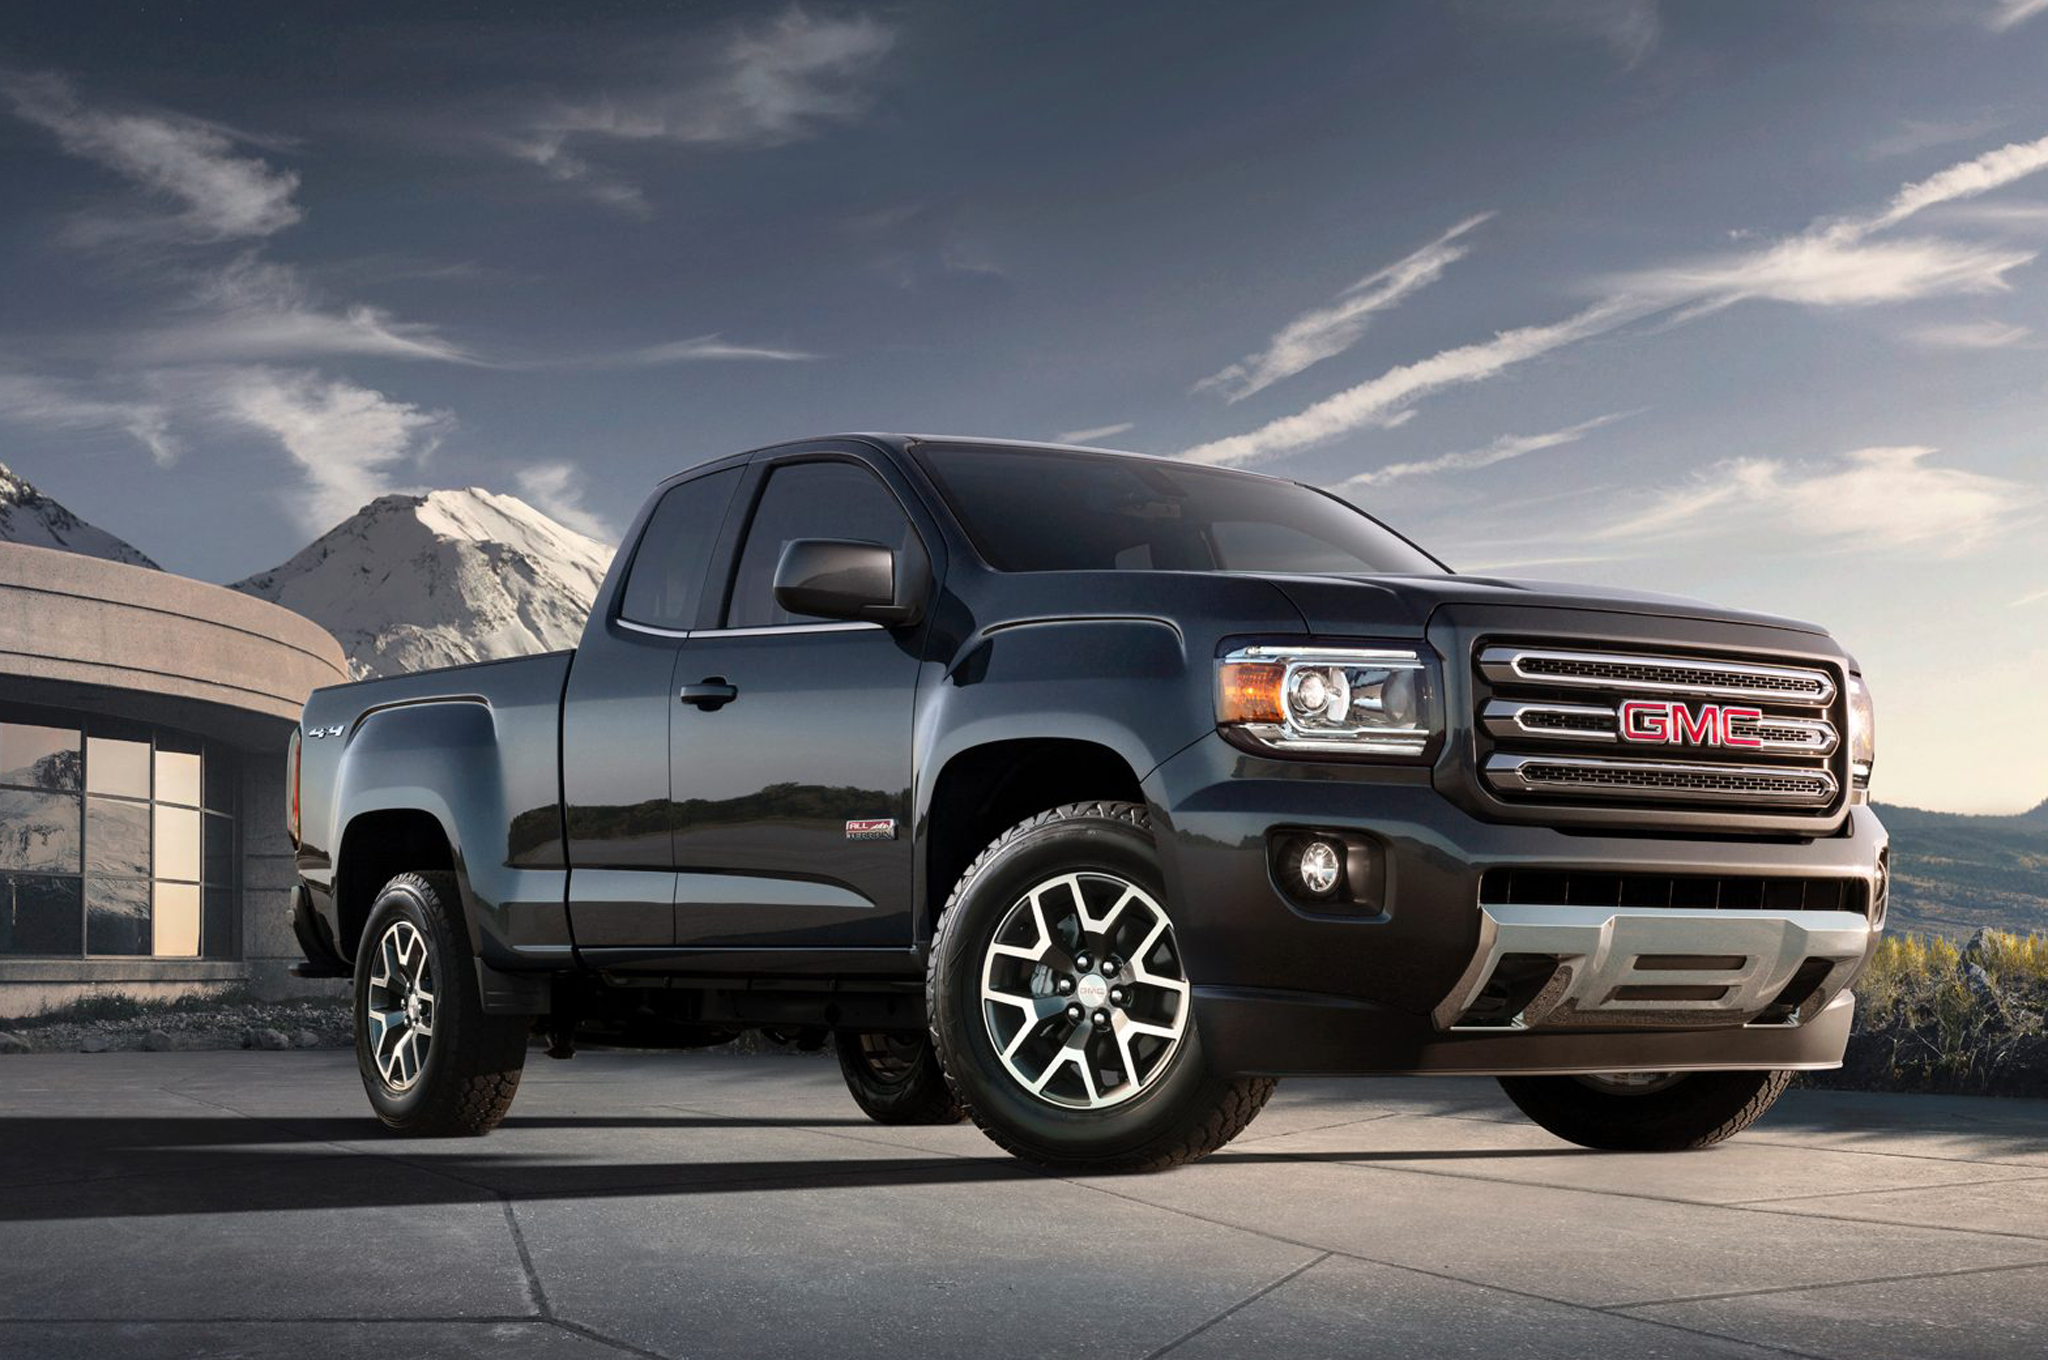 2016 Gmc denali photo - 3